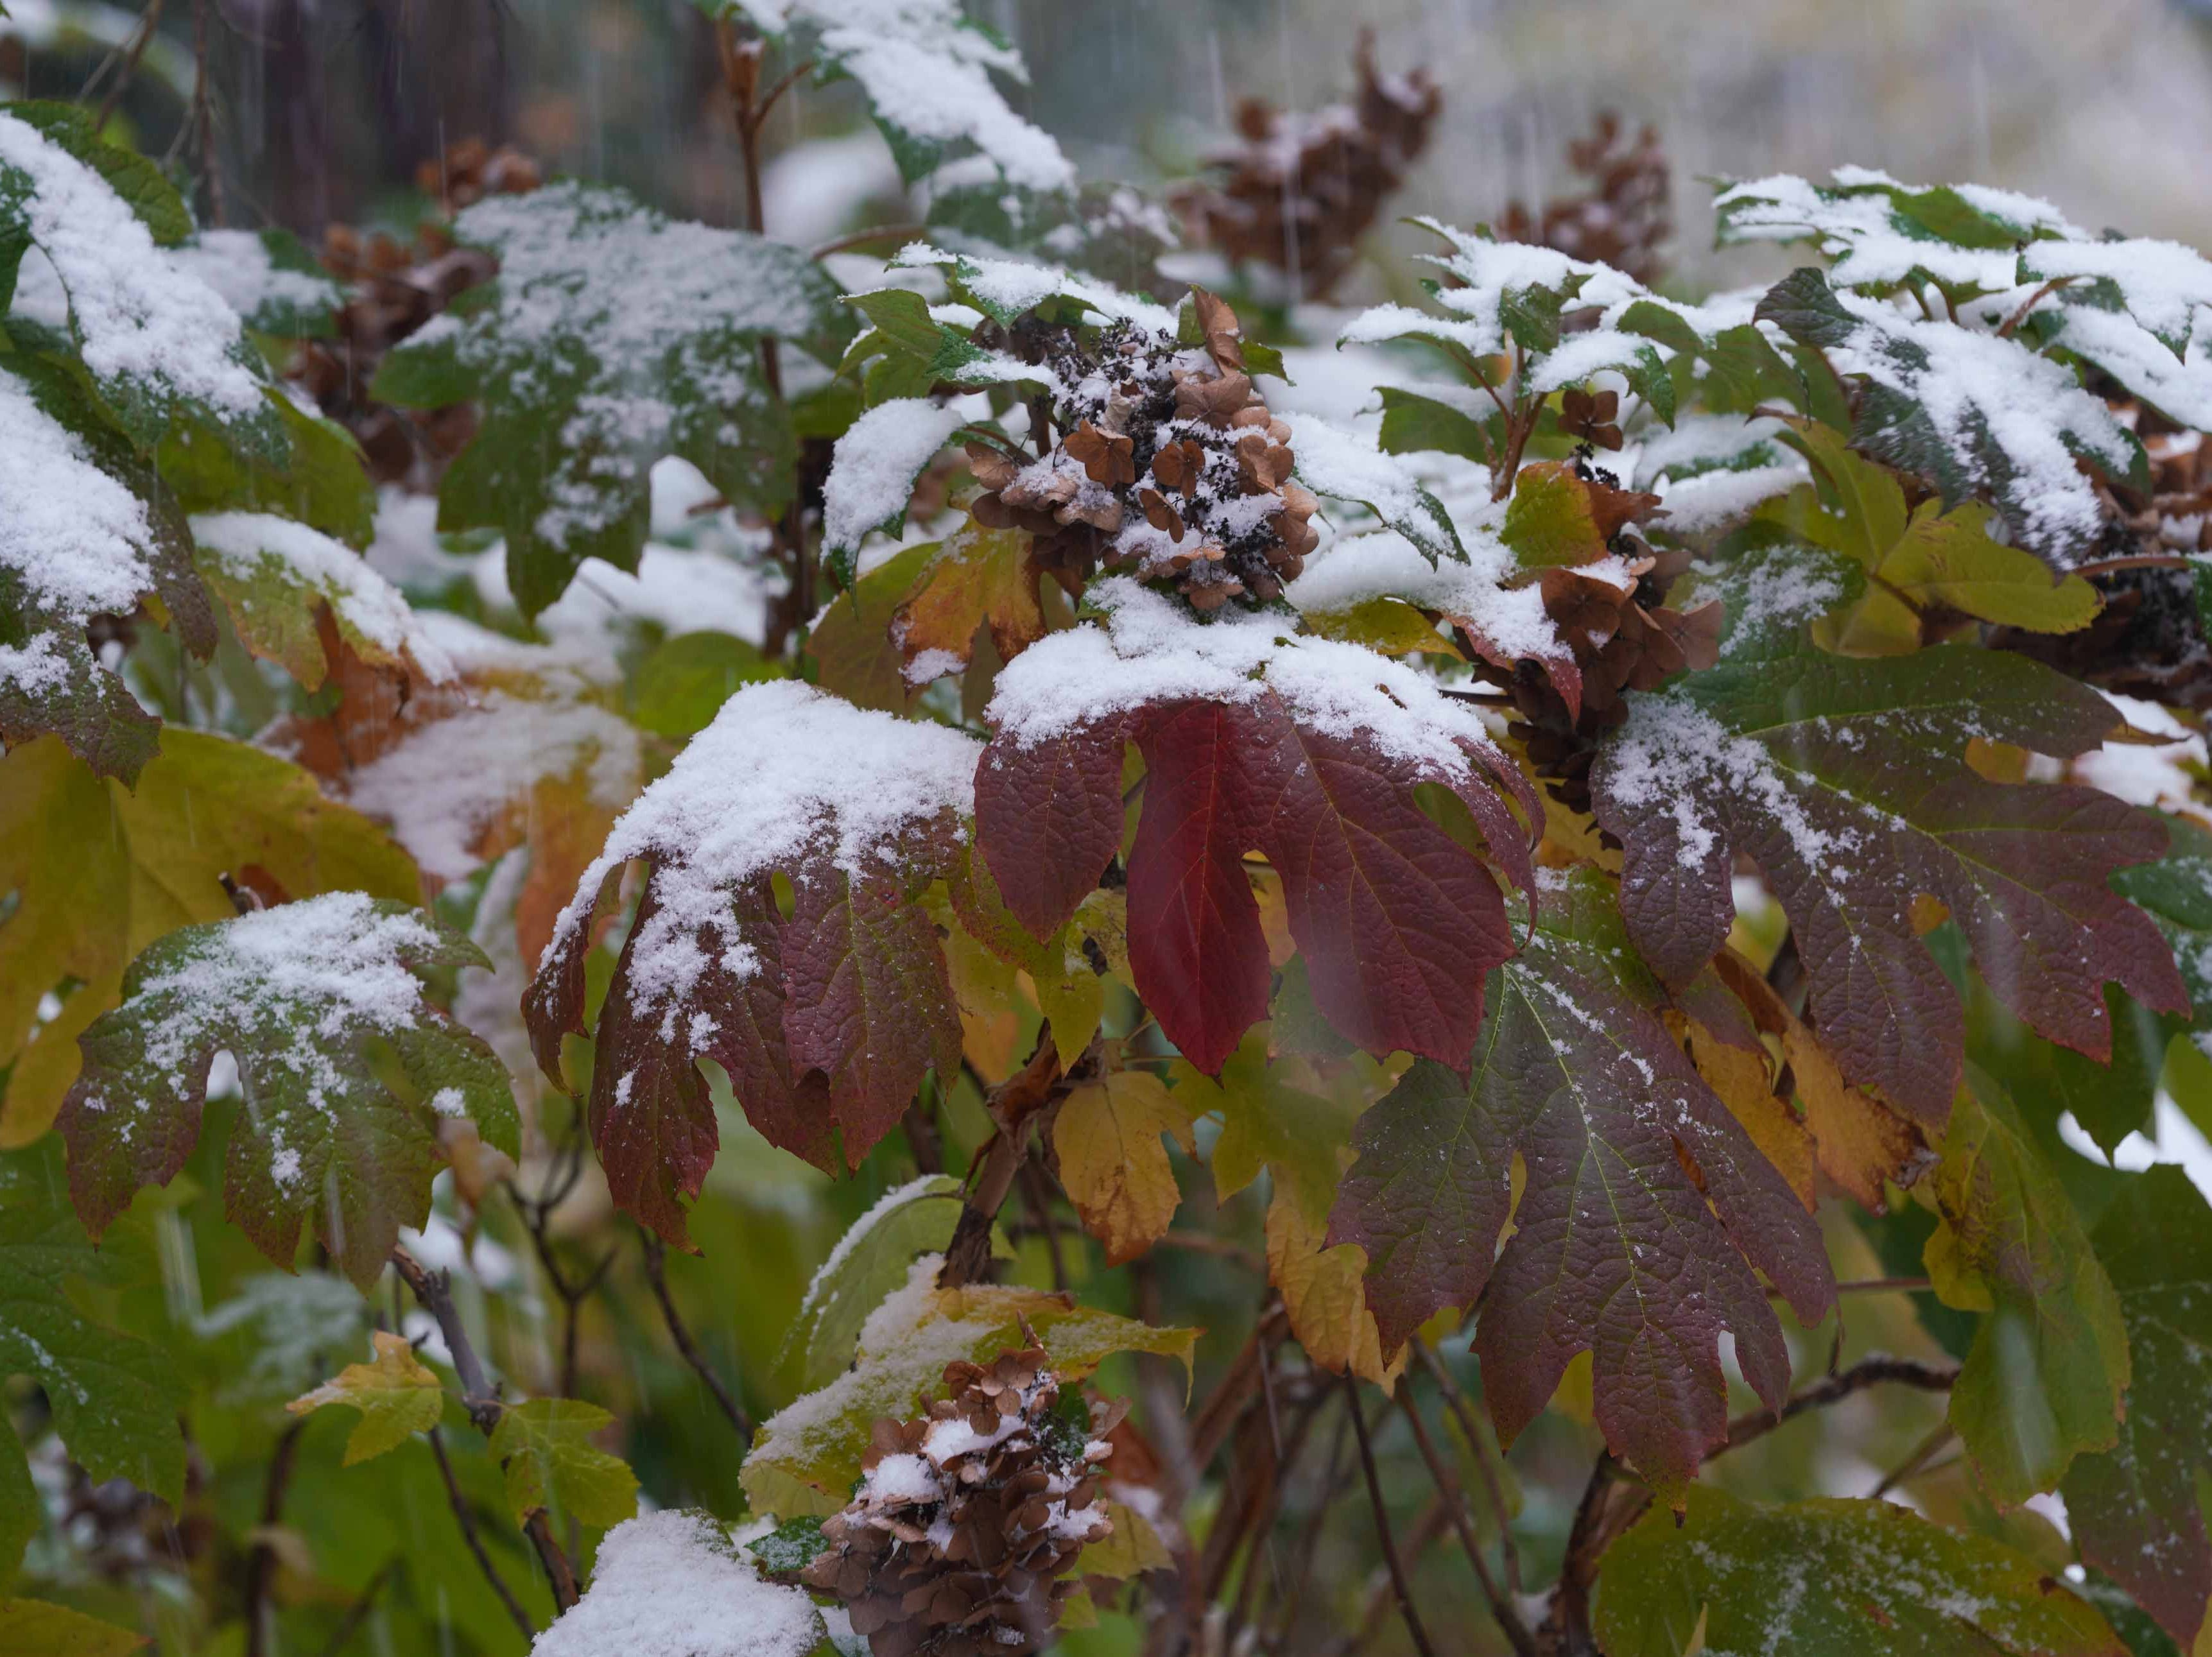 Fall colored foliage got a dusting of snow in Old New Castle on Thursday morning.